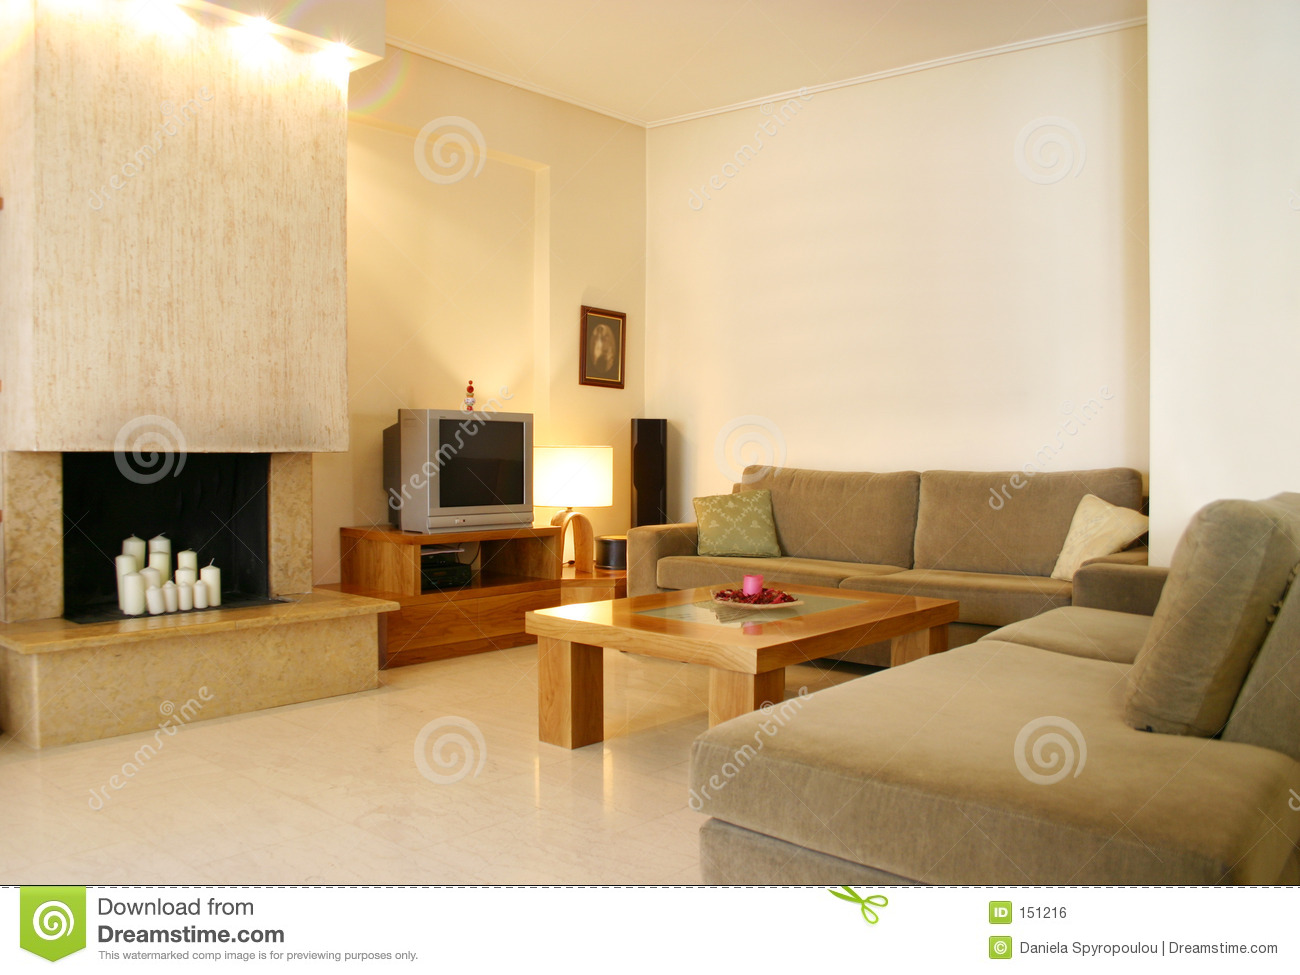 Home interior design stock photo image of modern for Interior home